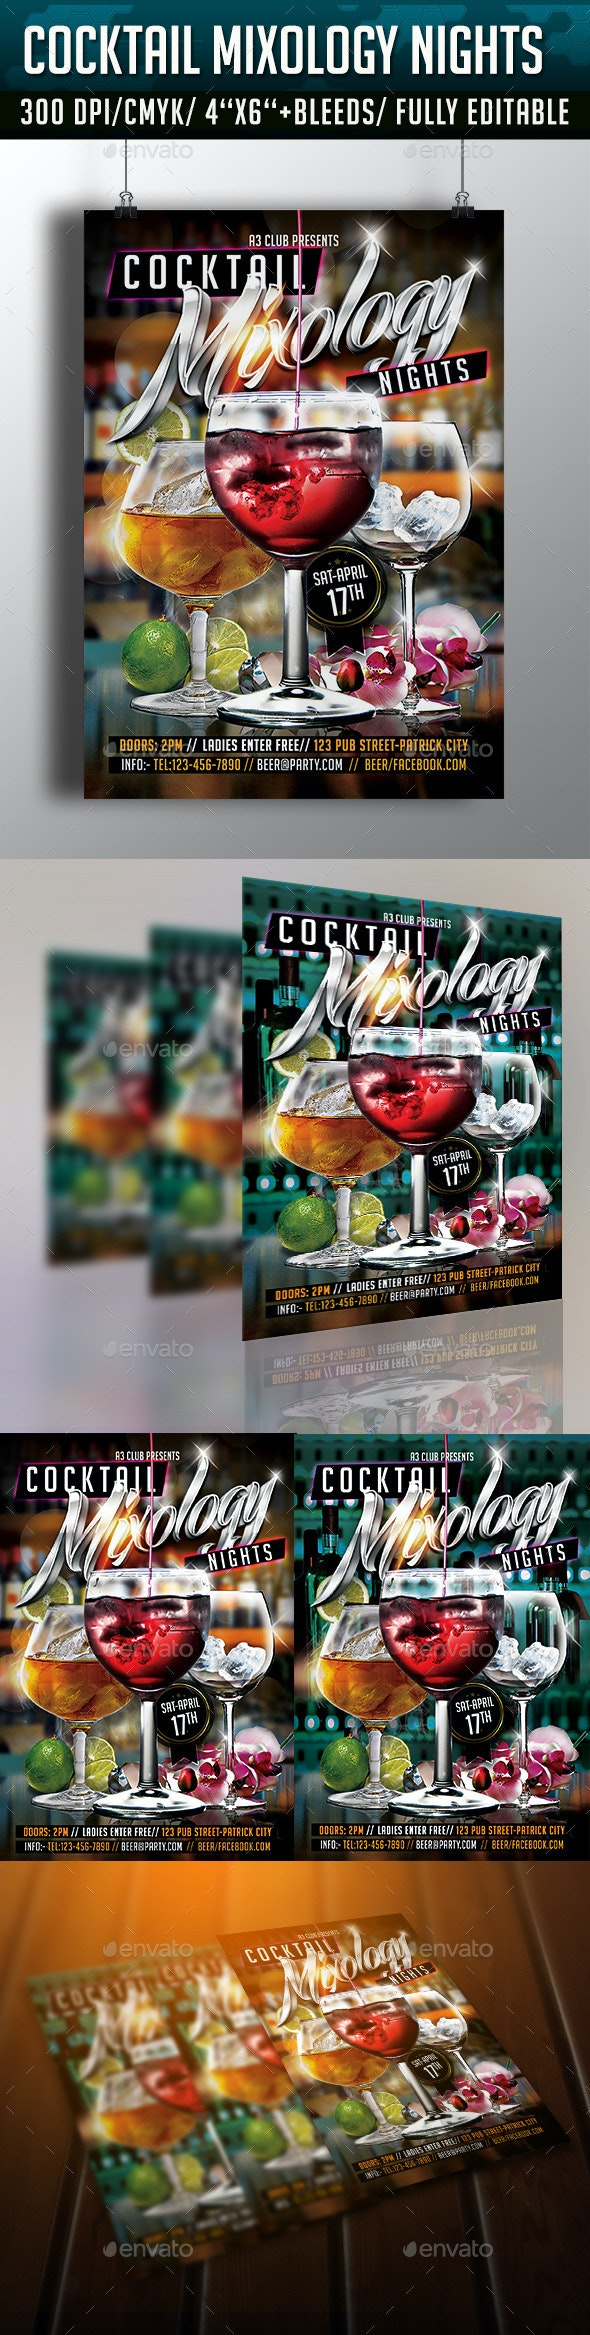 Cocktail Mixology Nights Flyer  - Clubs & Parties Events